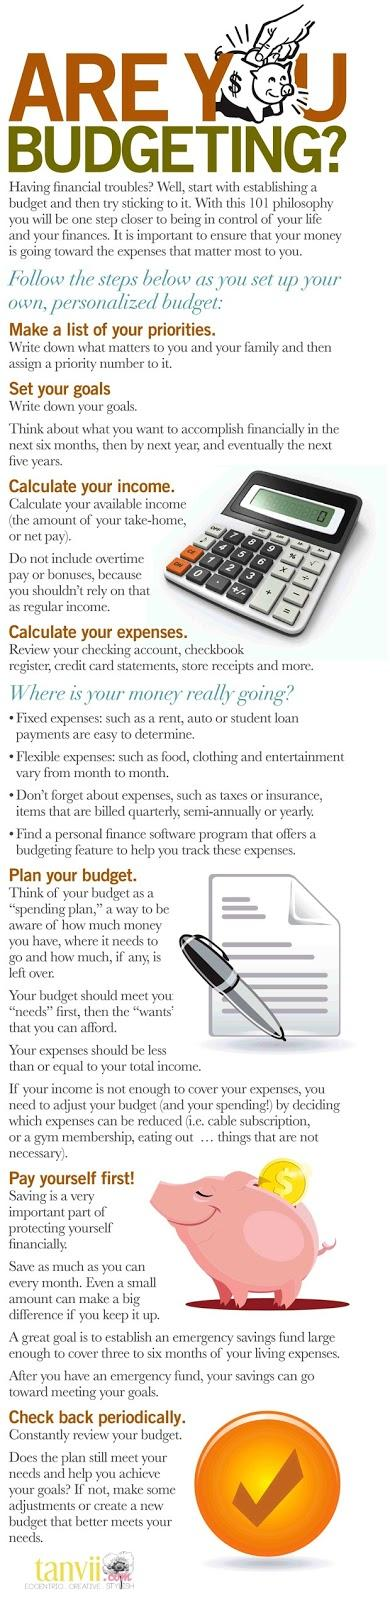 Are you Budgeting?